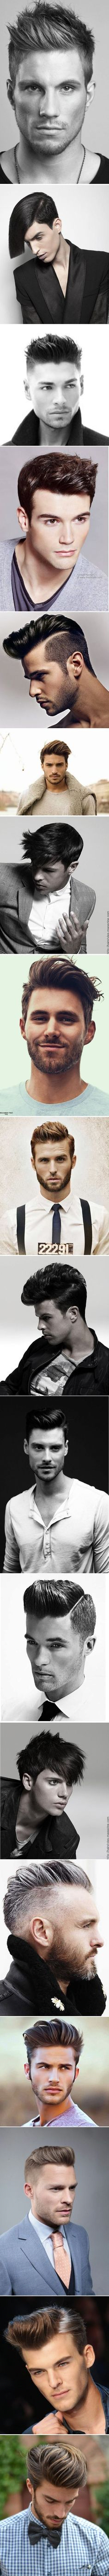 Gorgeous hairstyles for men!